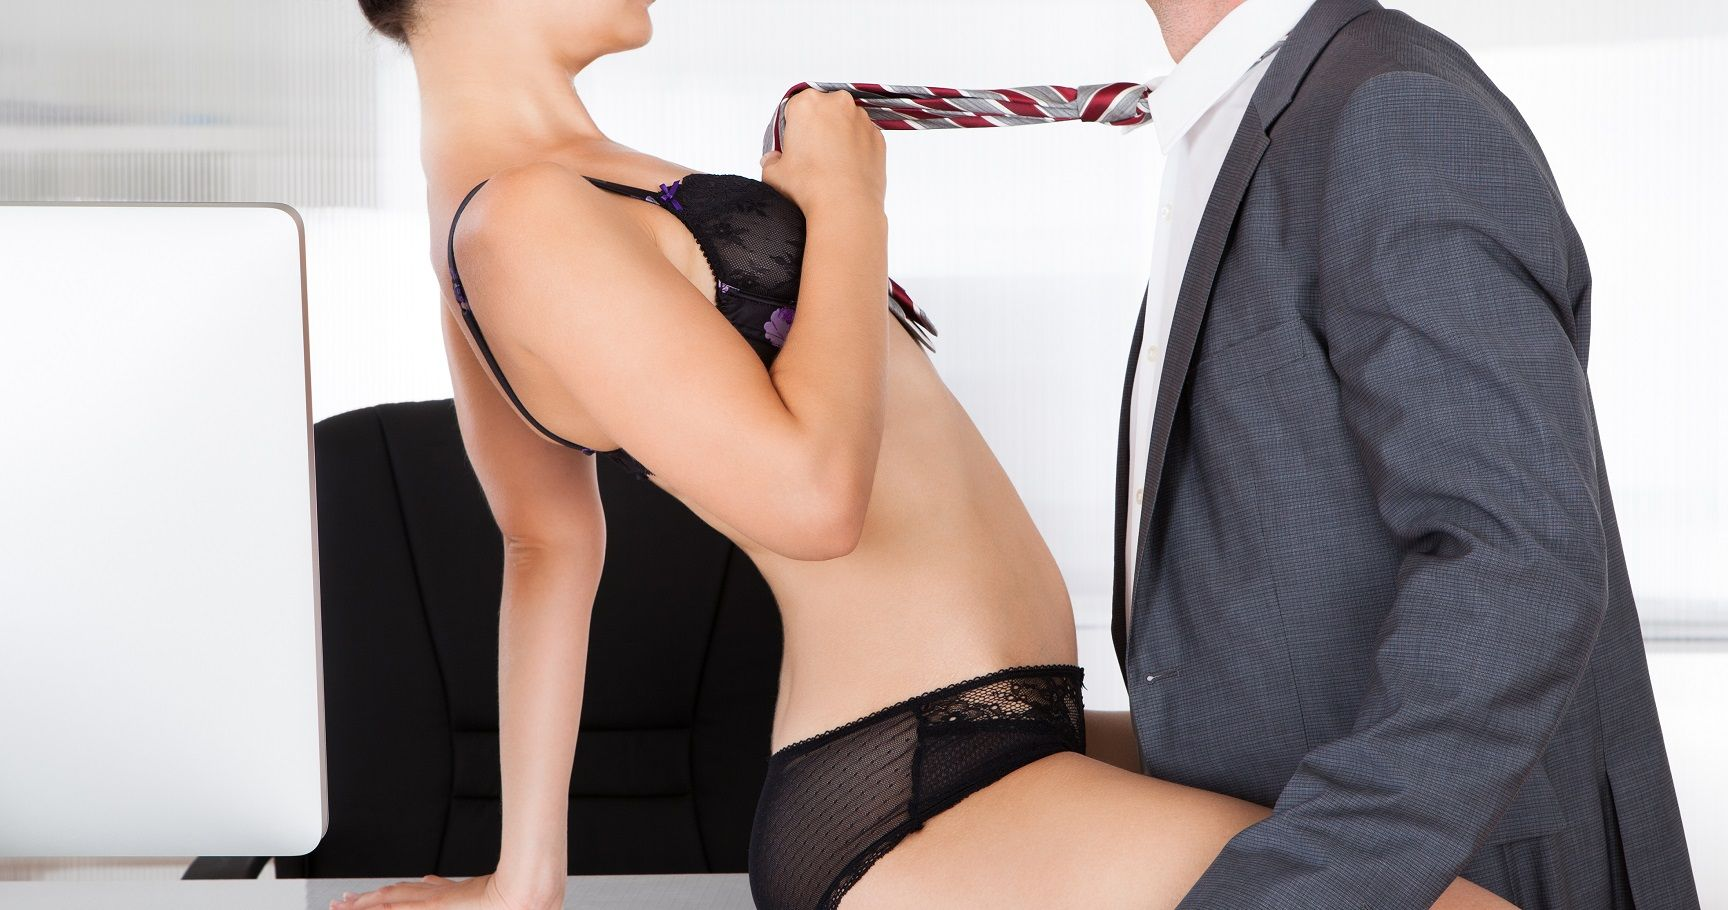 10 Secret Fantasies Every Woman Has But Won't Admit To